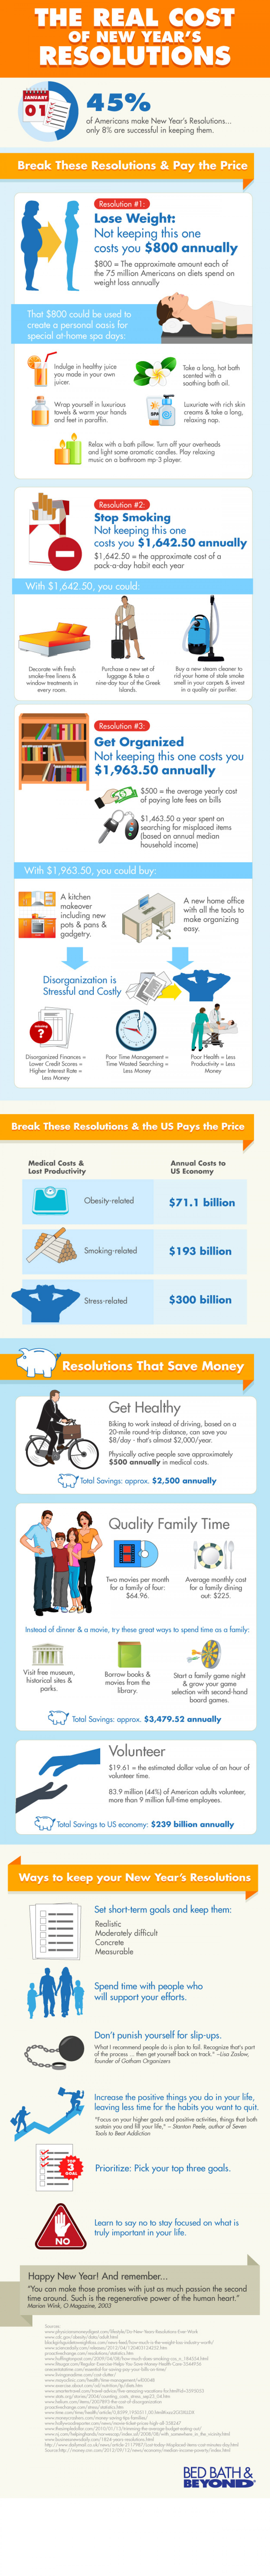 The Real Cost of New Year's Resolutions Infographic